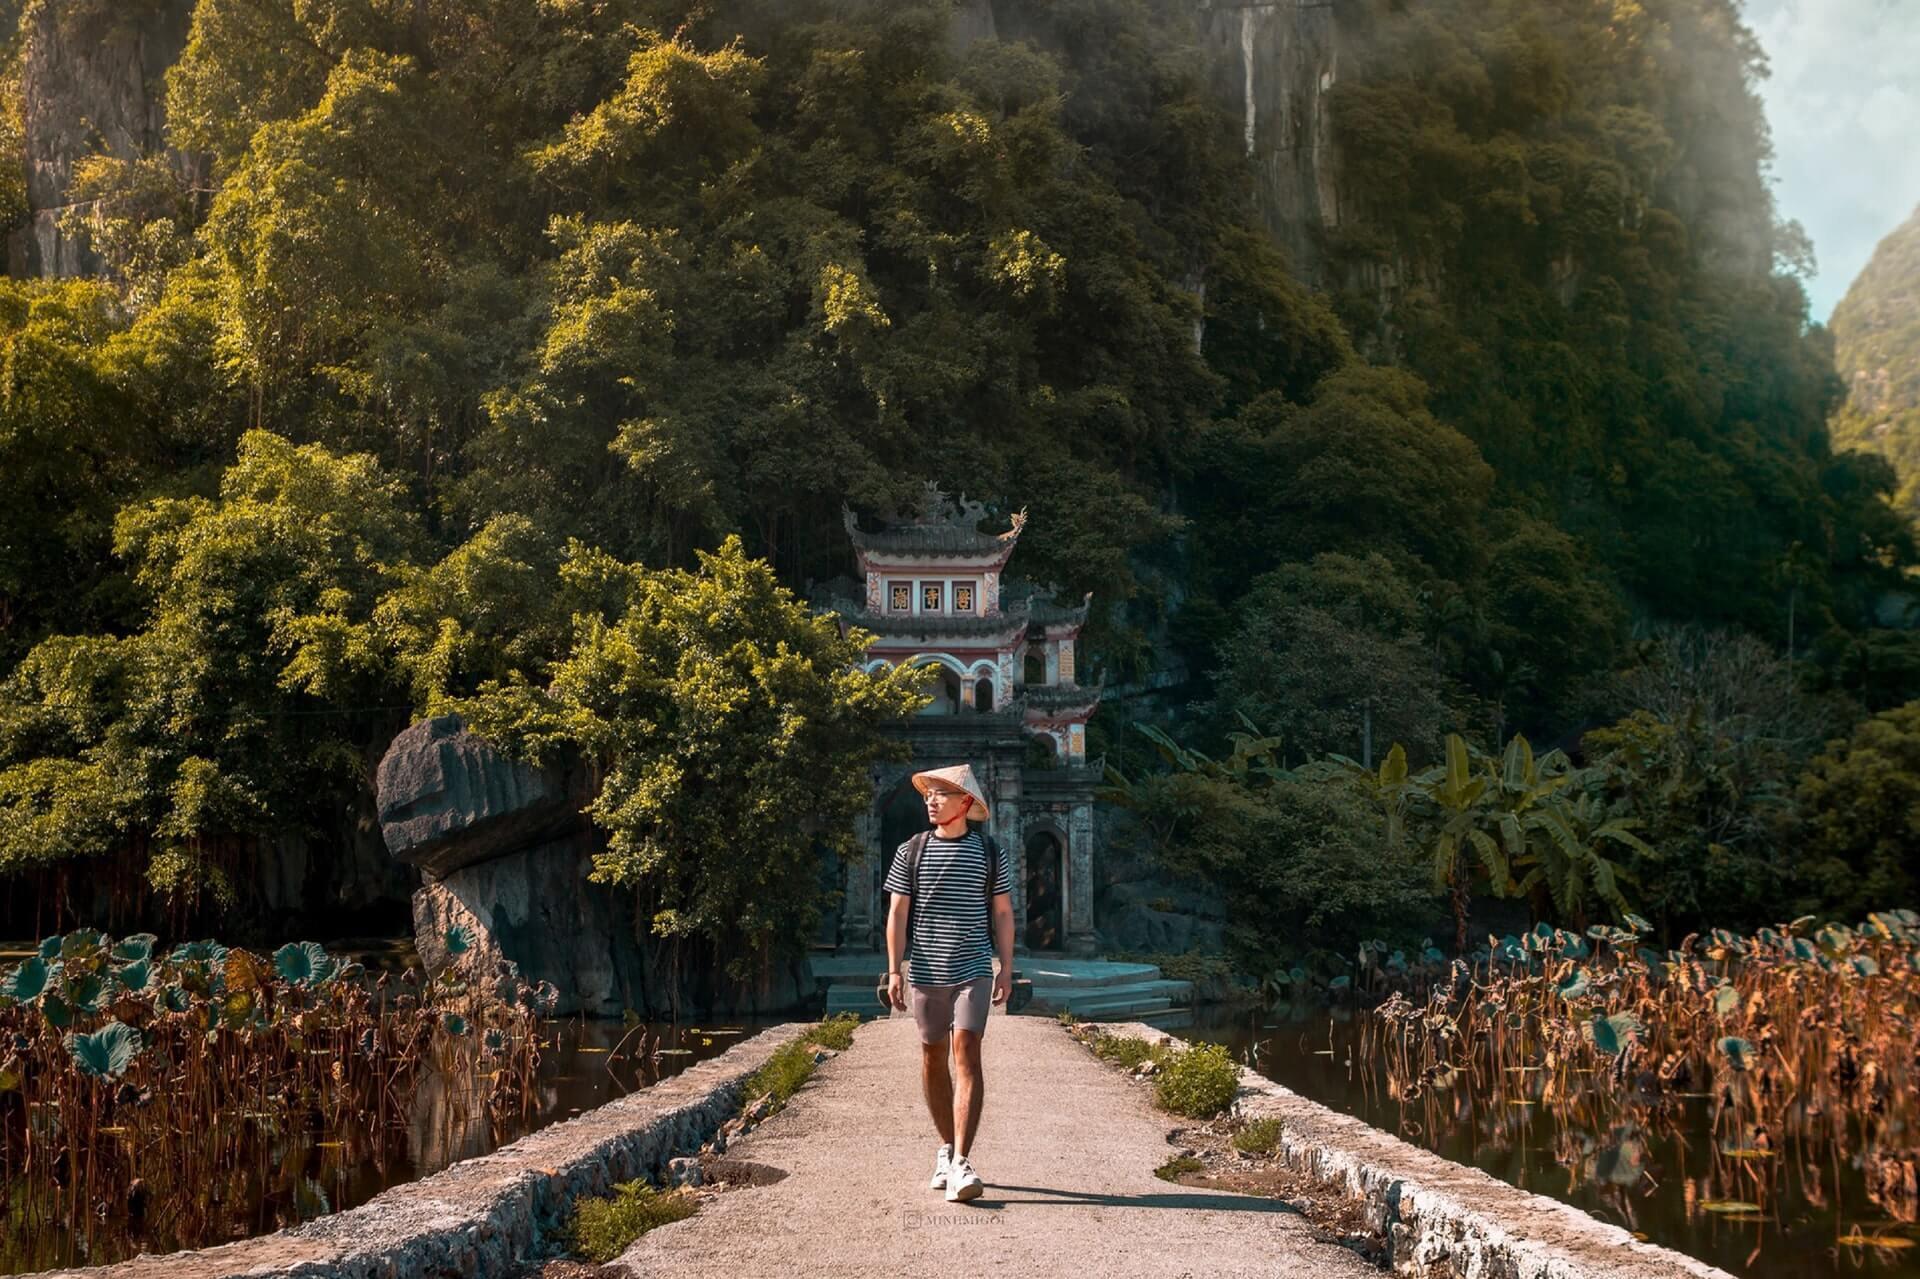 A backpacker in Vietnam walks on a bridge away from a cultural attraction